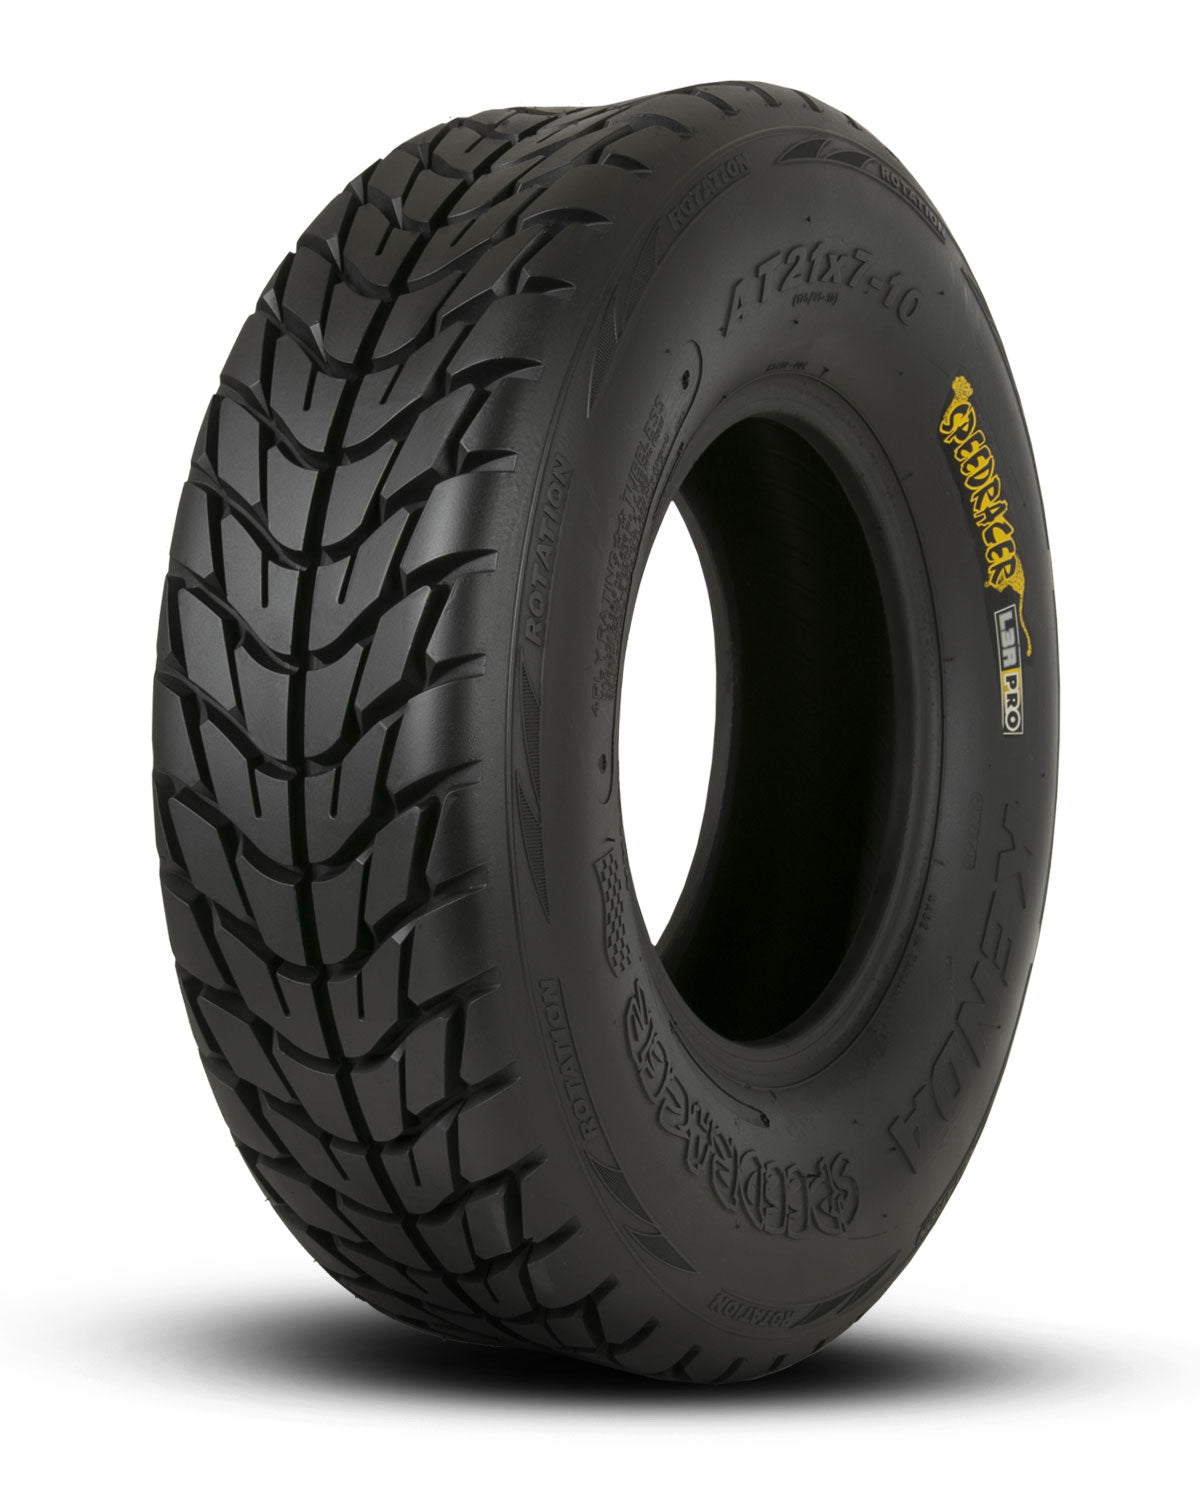 Kedna Speed Racer 4 Ply Tyres